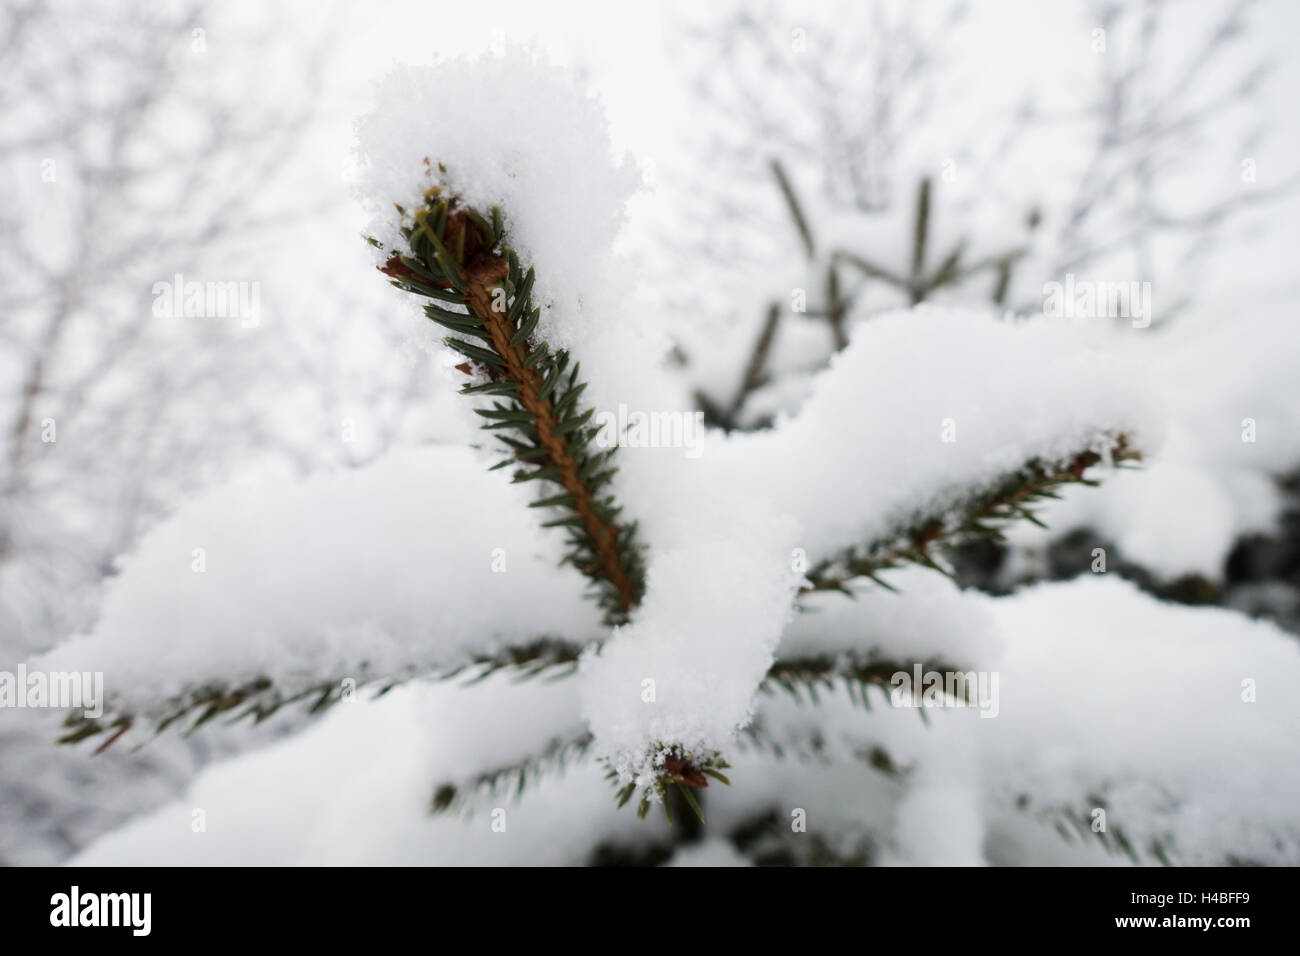 Spruce twig covered with snow - Stock Image